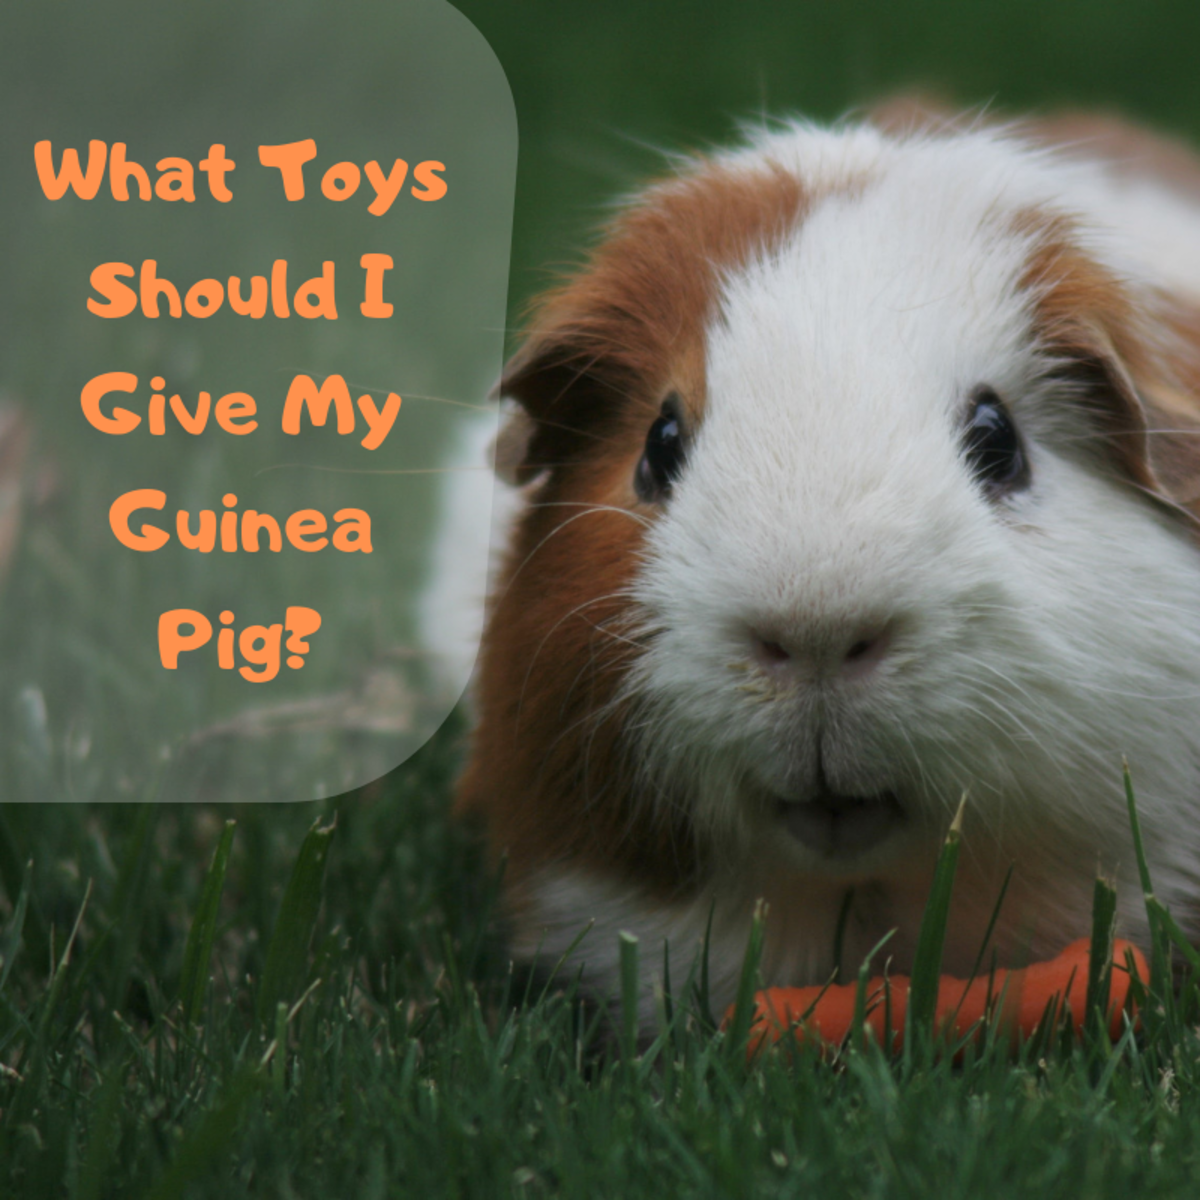 What Toys Can I Give My Guinea Pig?